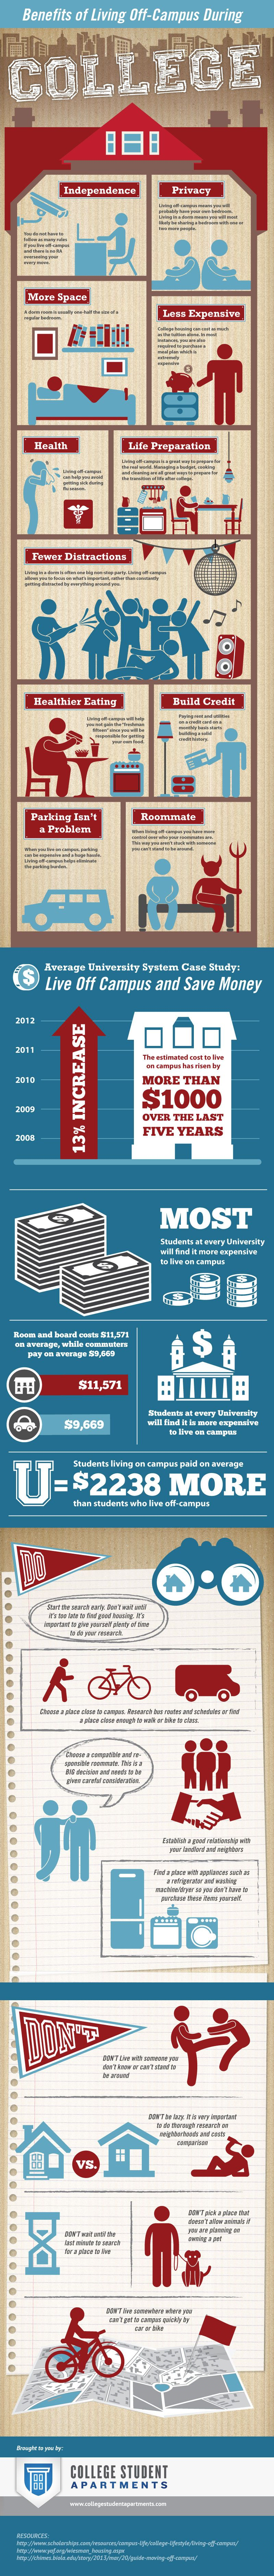 benefits-of-living-offcampus-during-college_5182a40b2a902